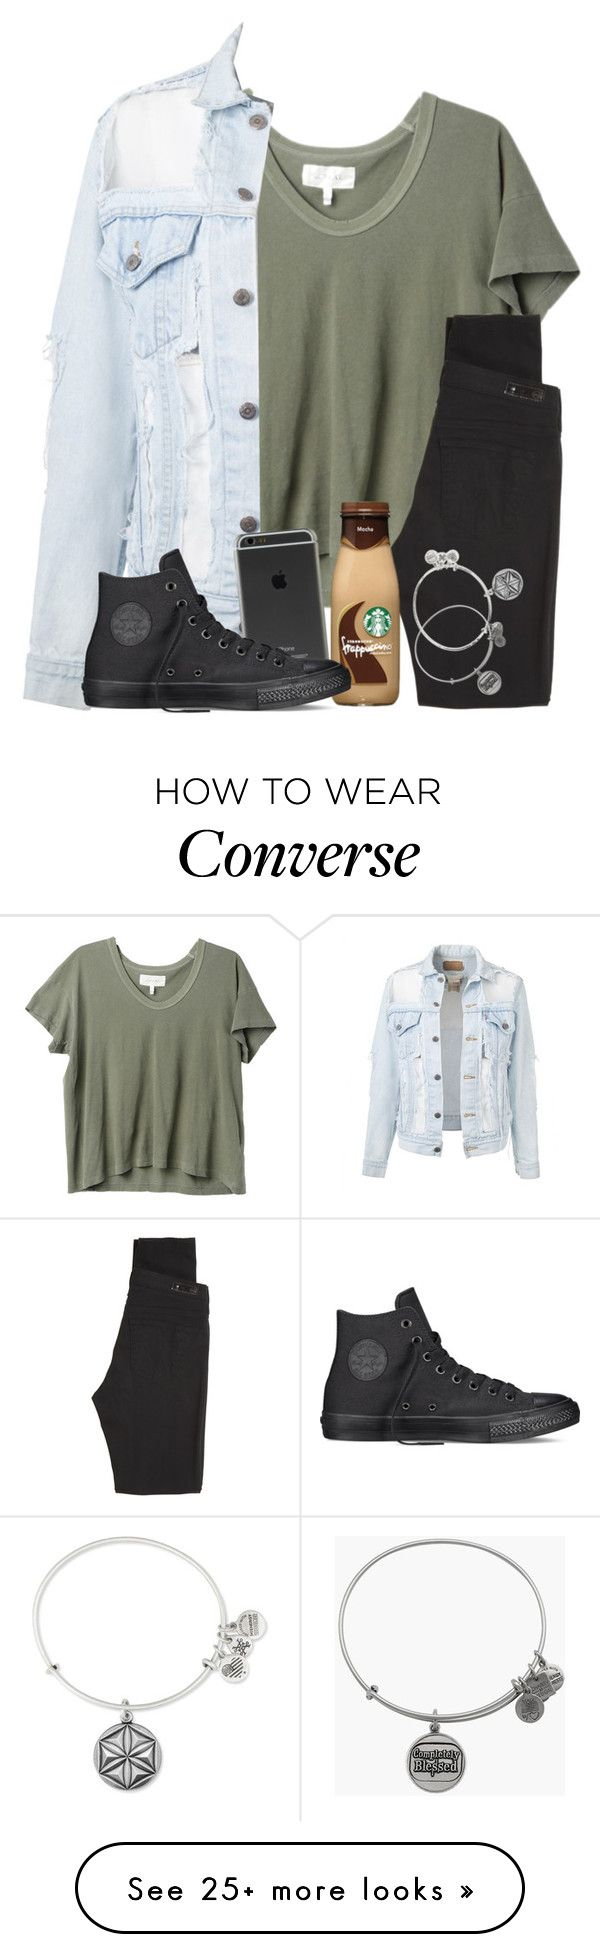 """""""Watching Sumthin, He Slowly Falling For Her Ahhjfnsokfjs"""" by twaayy on Polyvore featuring The Great, AG Adriano Goldschmied, Converse and Alex and Ani"""